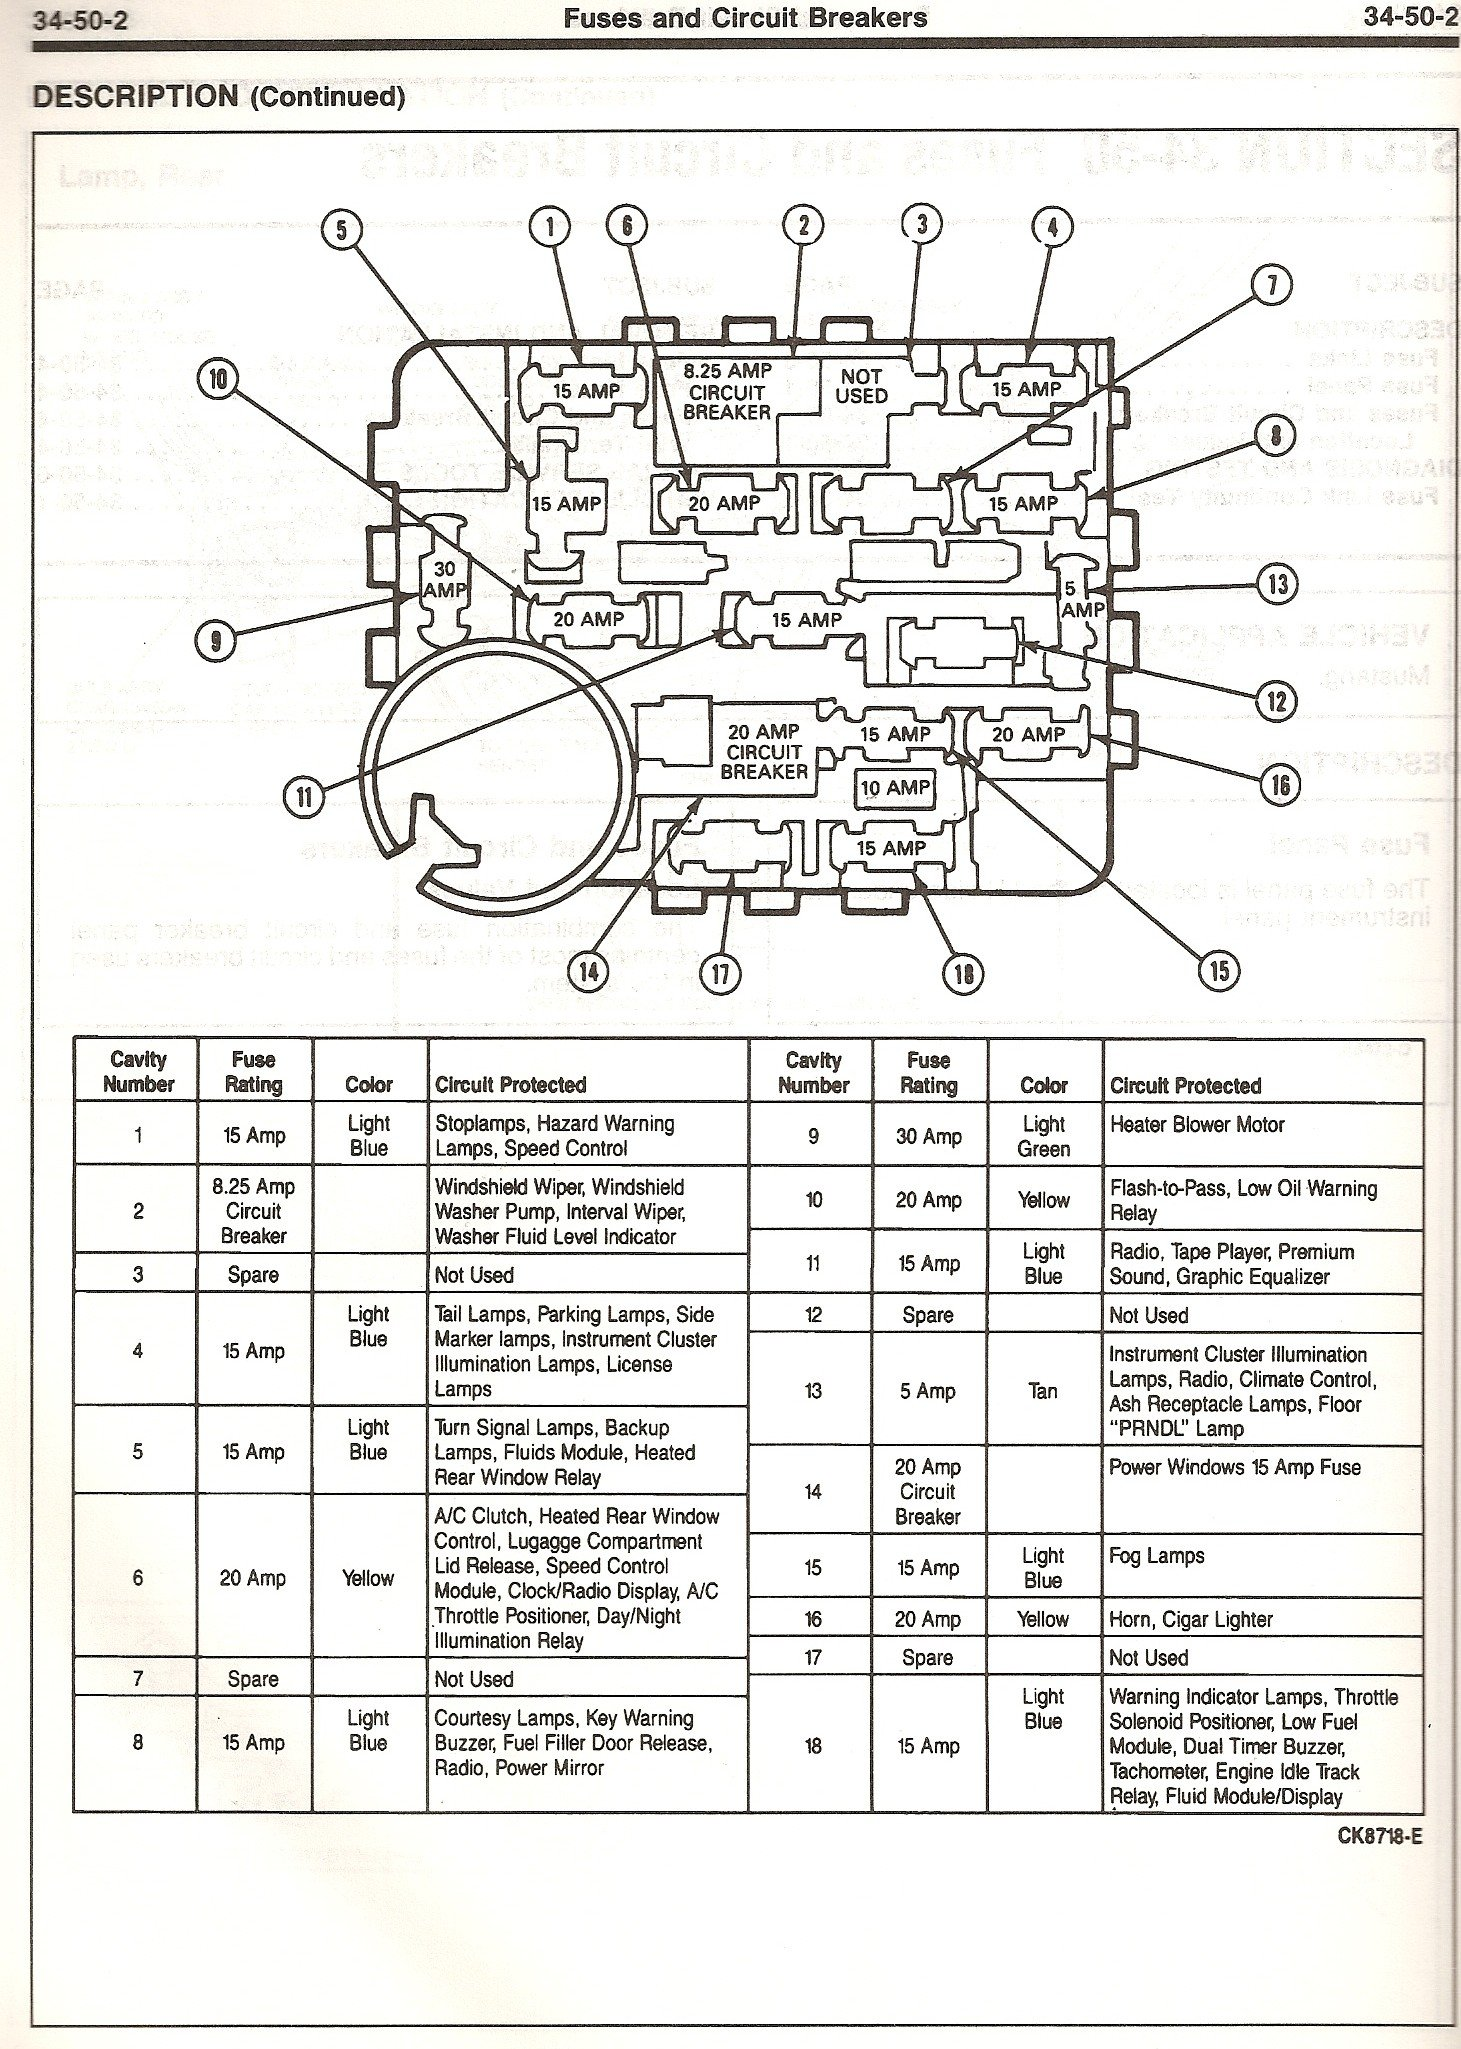 1991 Aerostar Fuse Panel Diagram Data Wiring Diagram Clear Pipe Clear Pipe Vivarelliauto It